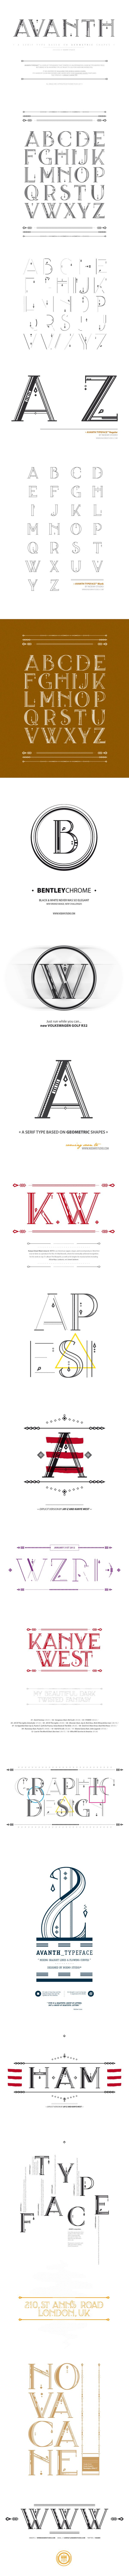 Some great ideas on how to present a typeface!